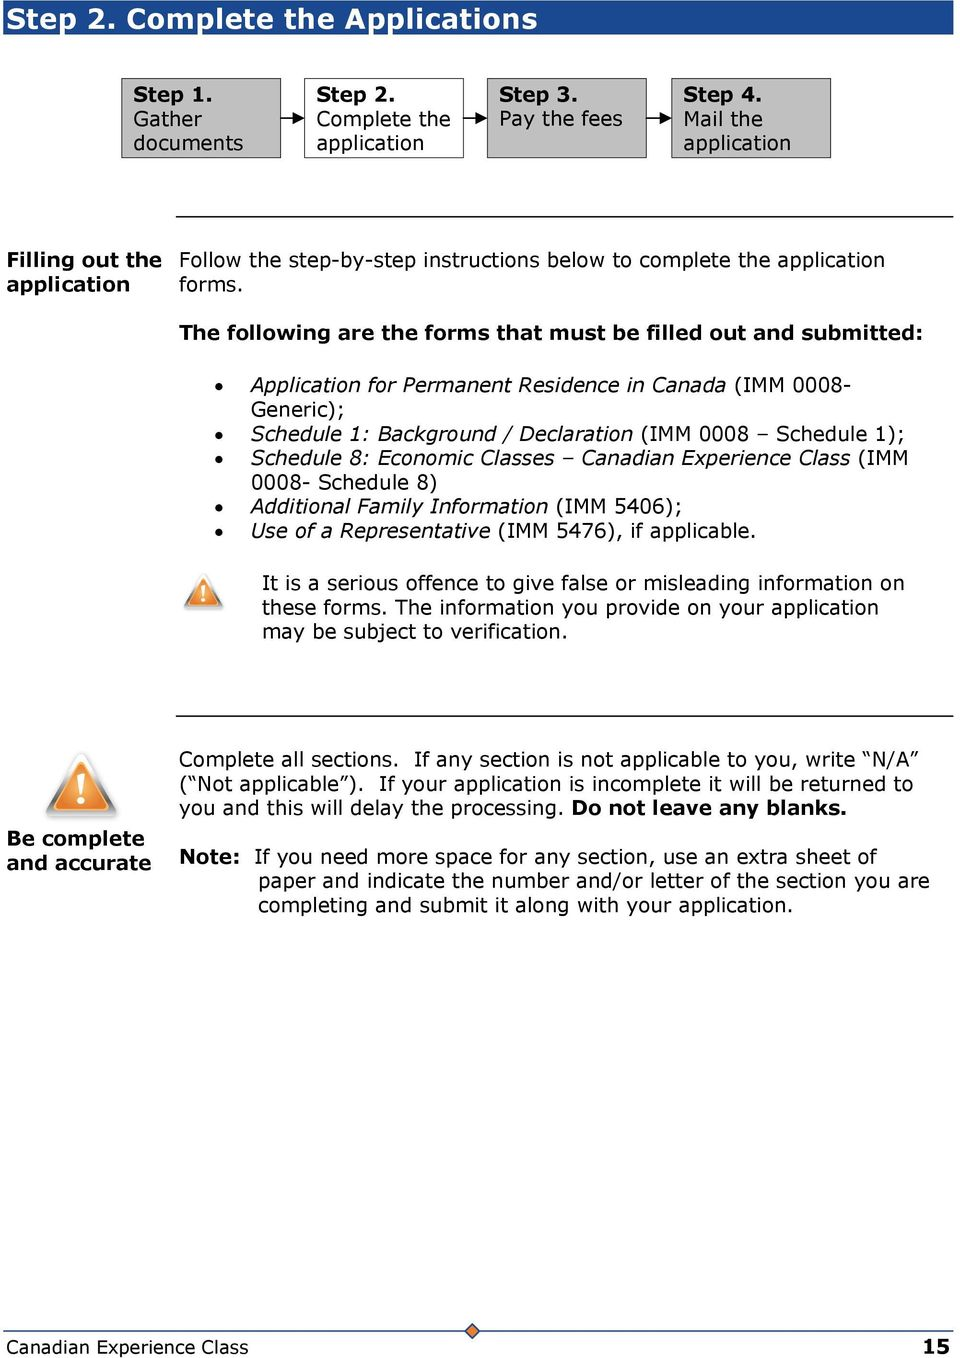 generic application form for canada imm 0008 pdf